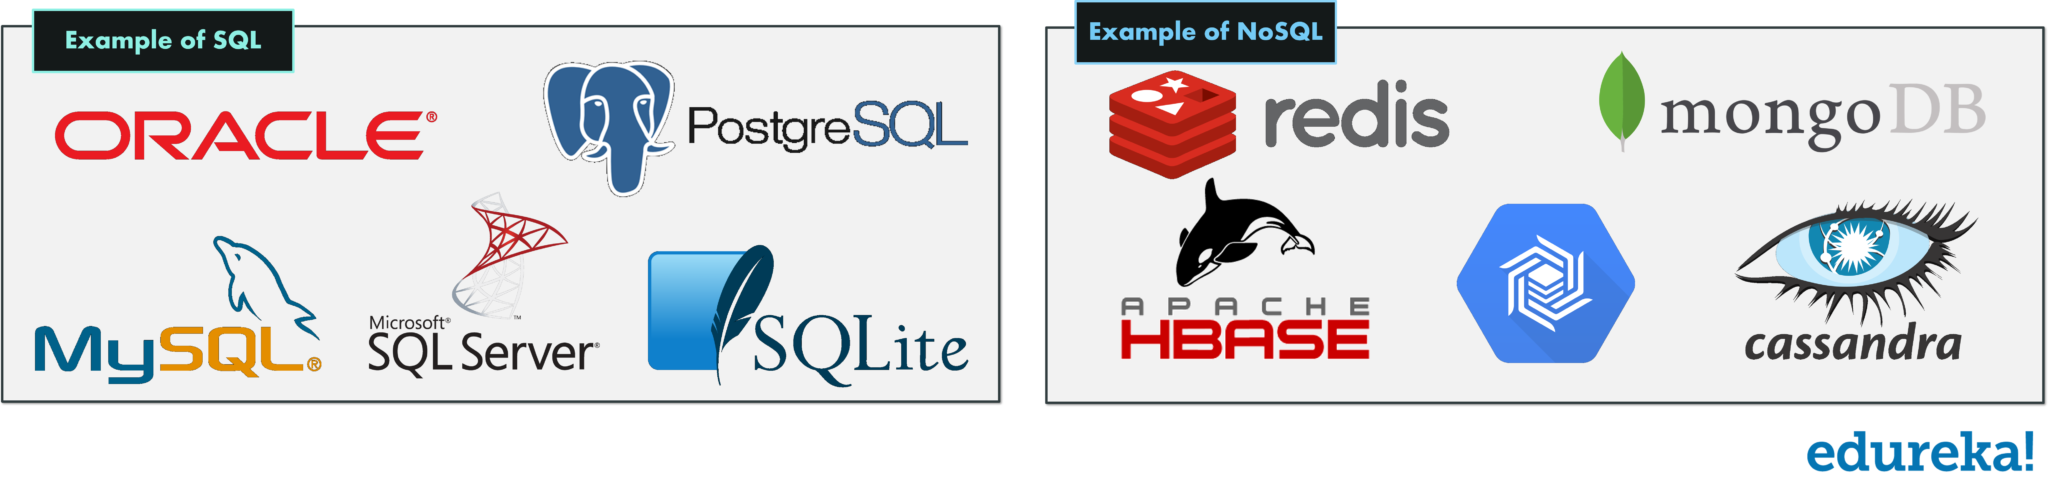 Examples of SQL and NoSQL - SQL vs NoSQL - Edureka